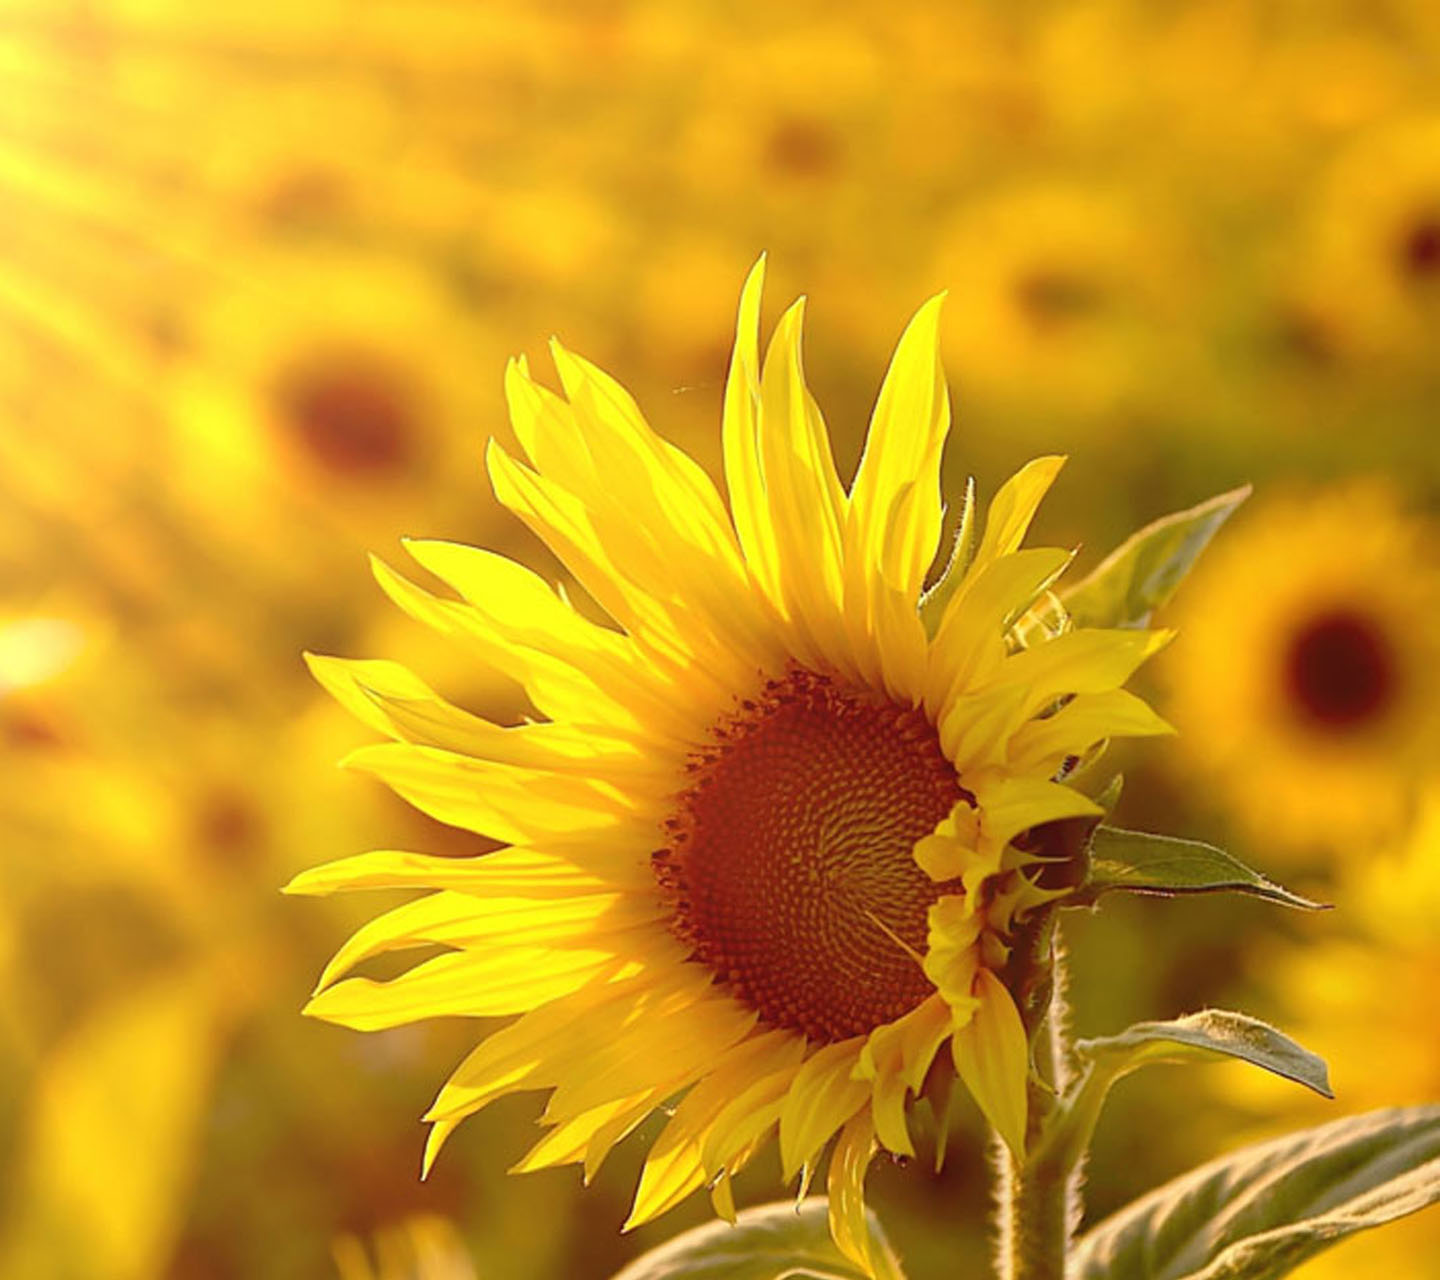 Best-images-about-Sunflowers-on-Pinterest-Sunflower-1920%C3%971080-Yellow-Sunflower-wallpaper-wpc9002830